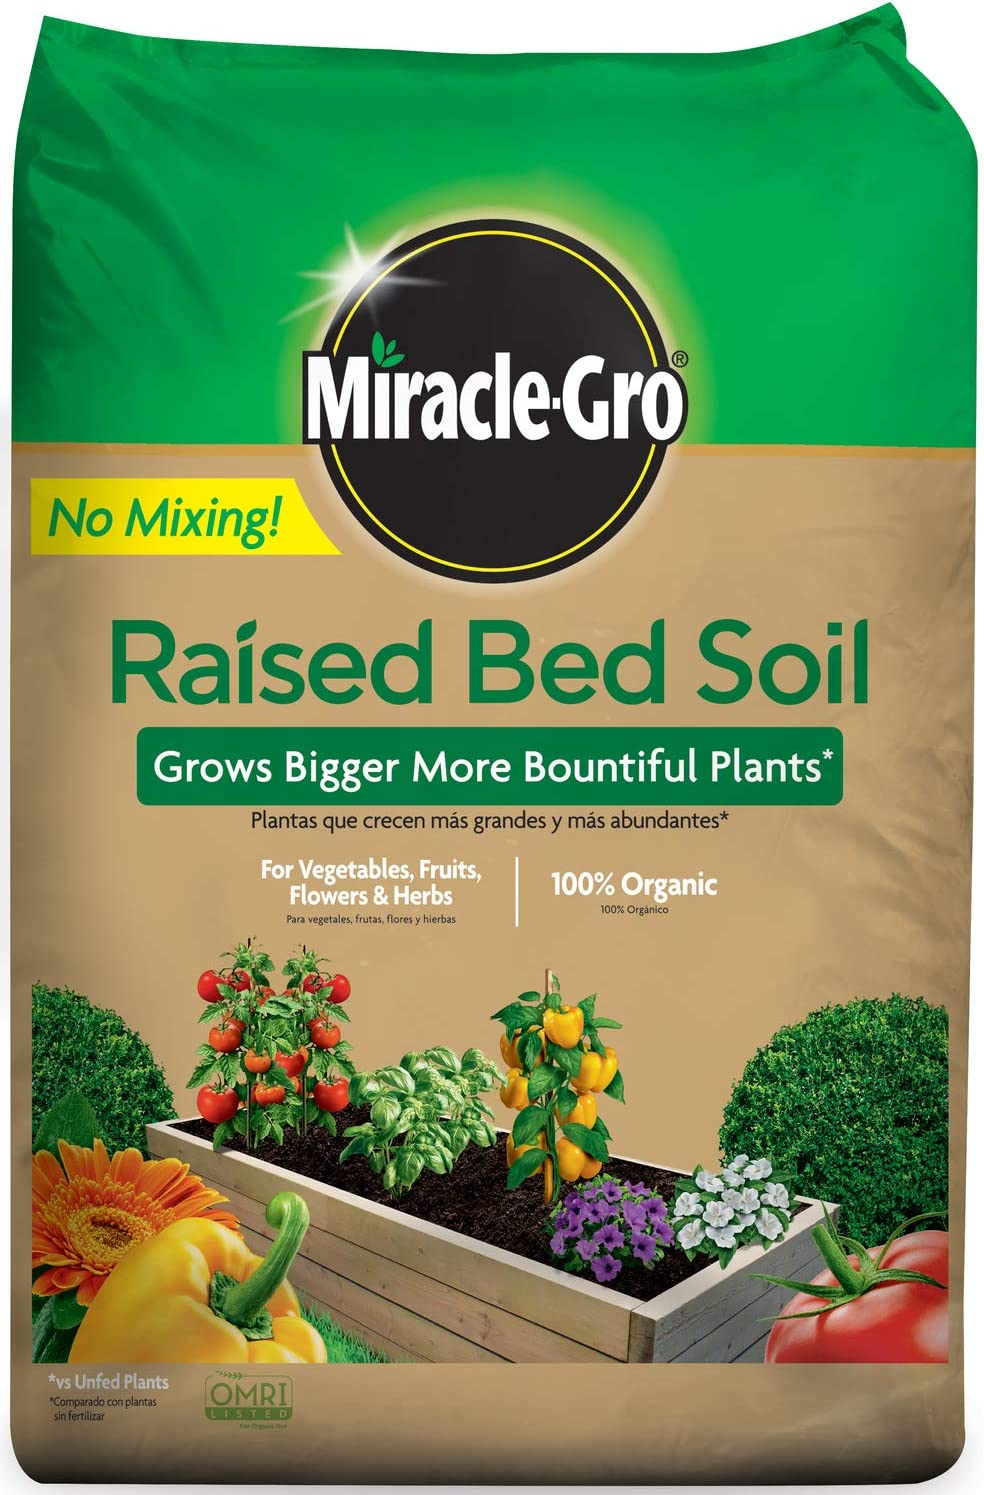 Miracle-Gro Raised Bed Soil